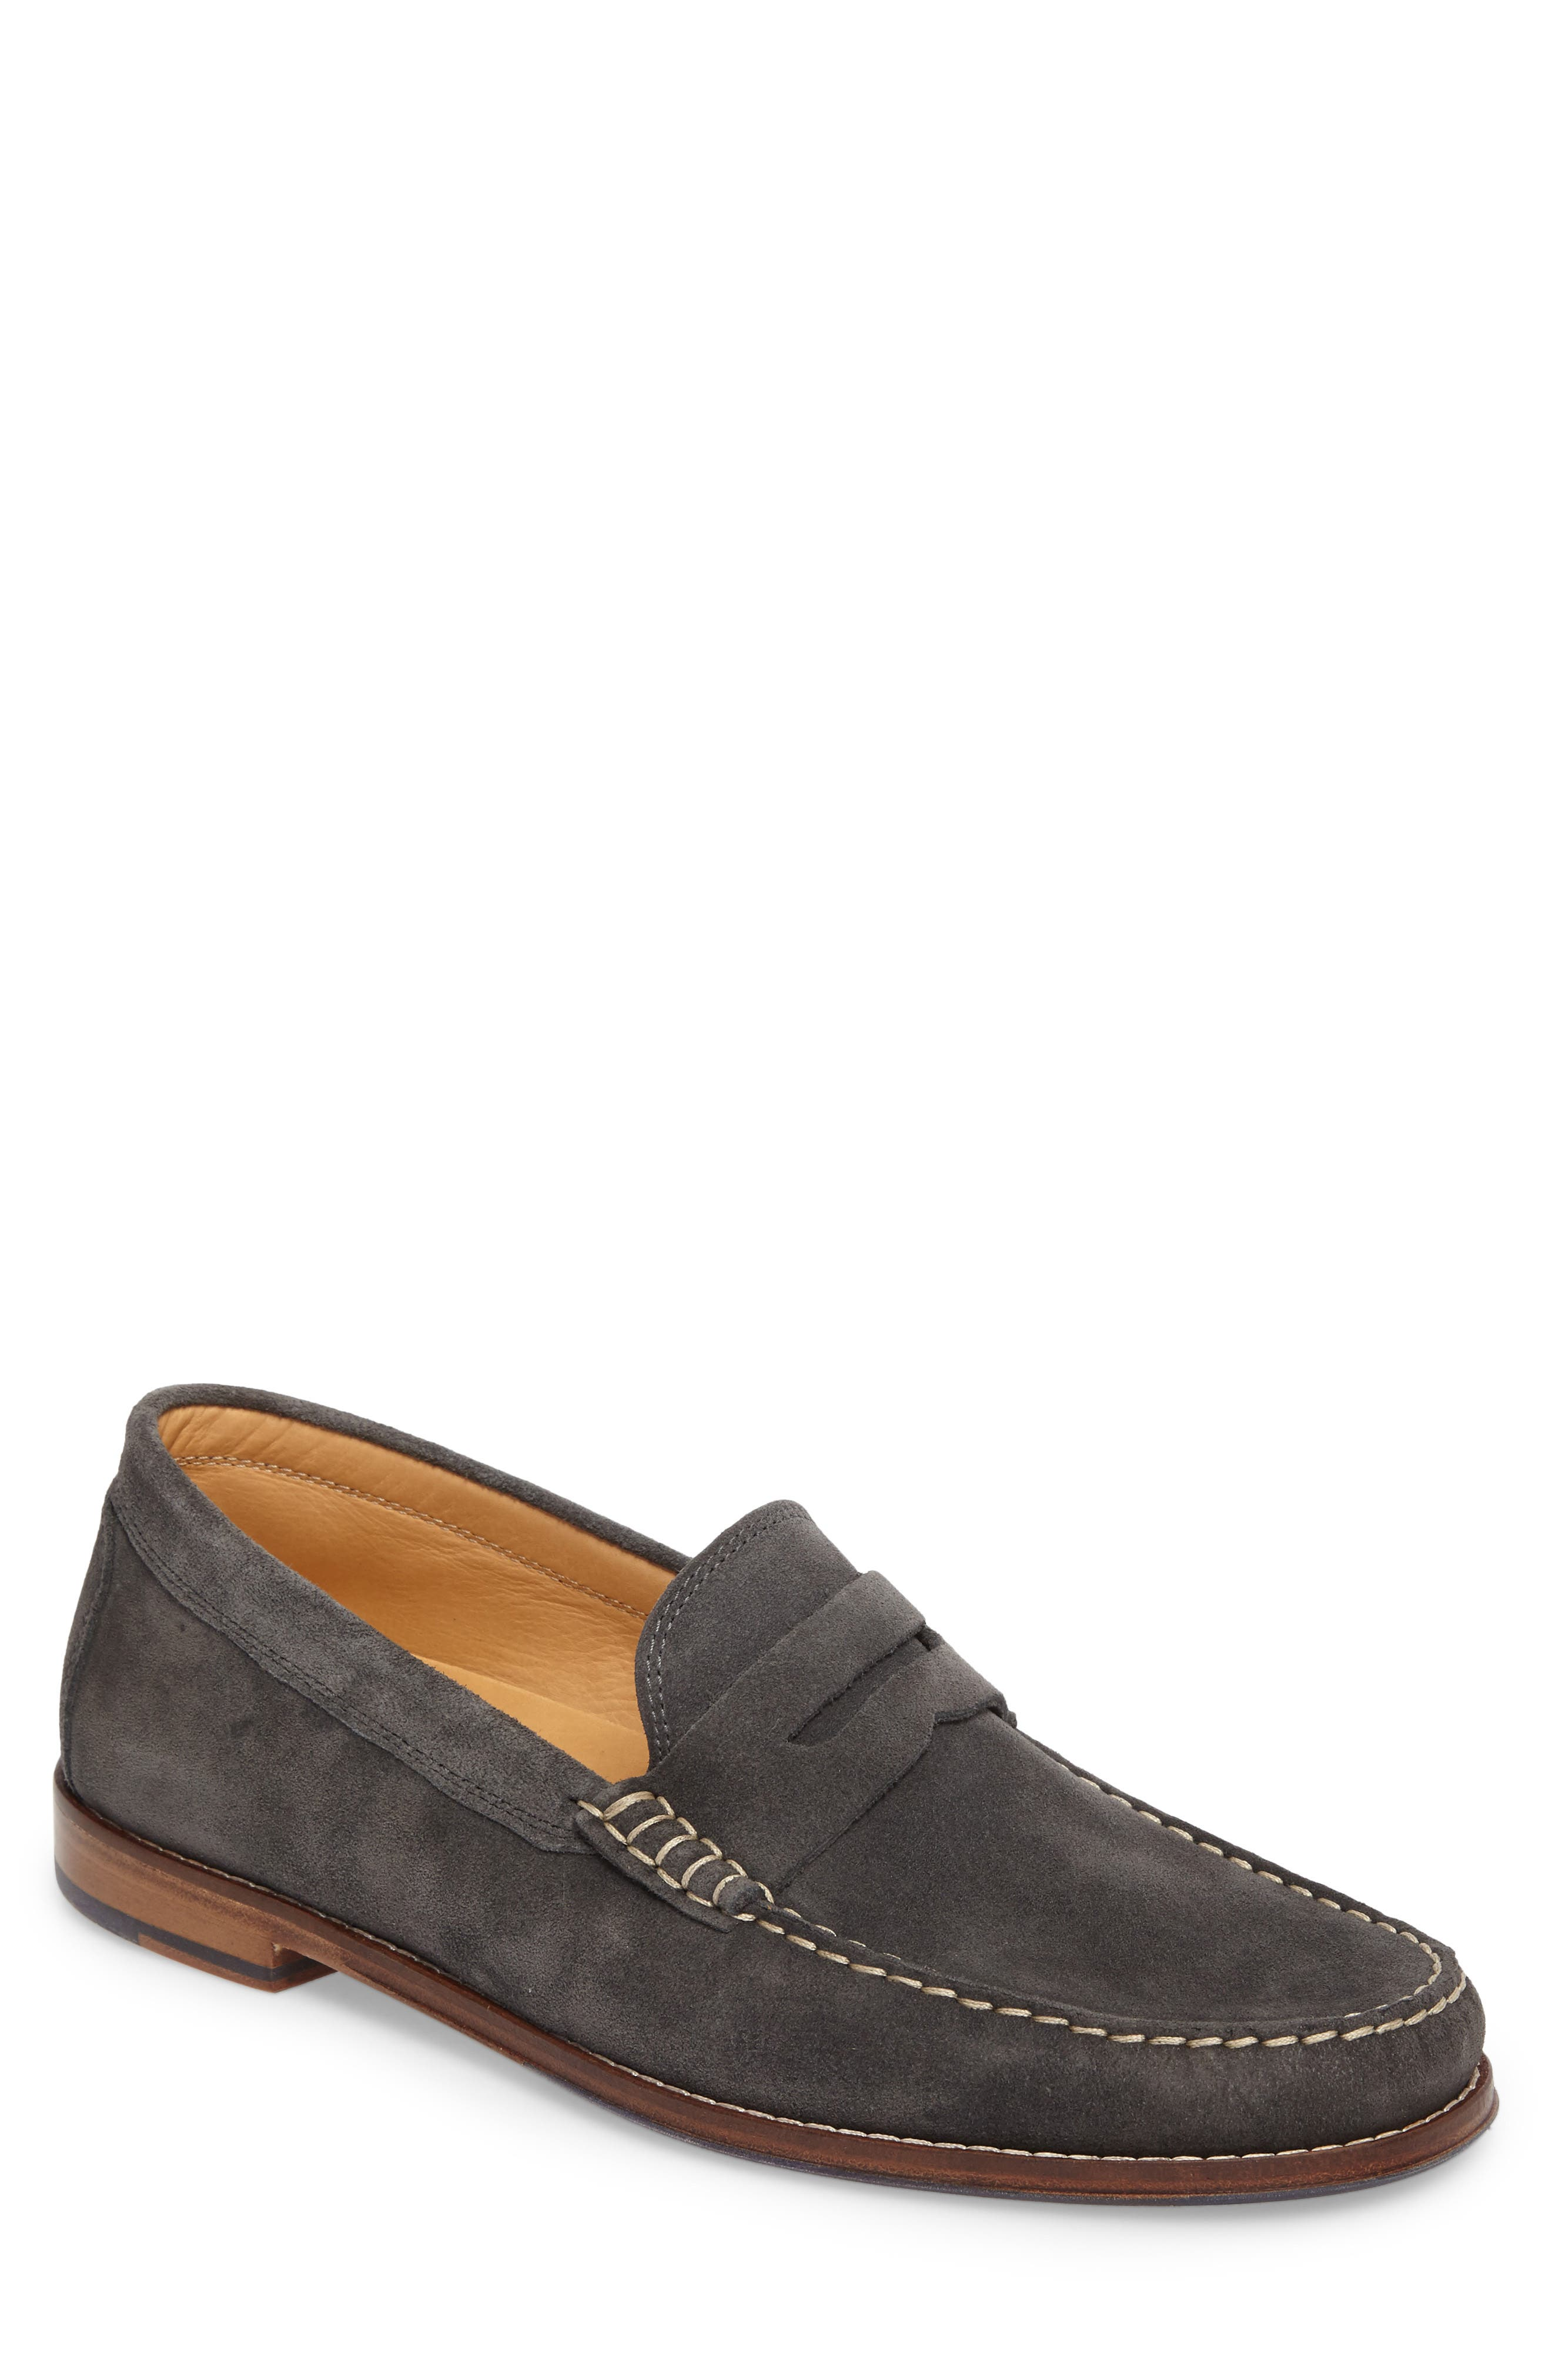 Ripley Penny Loafer,                             Main thumbnail 1, color,                             GREY LEATHER